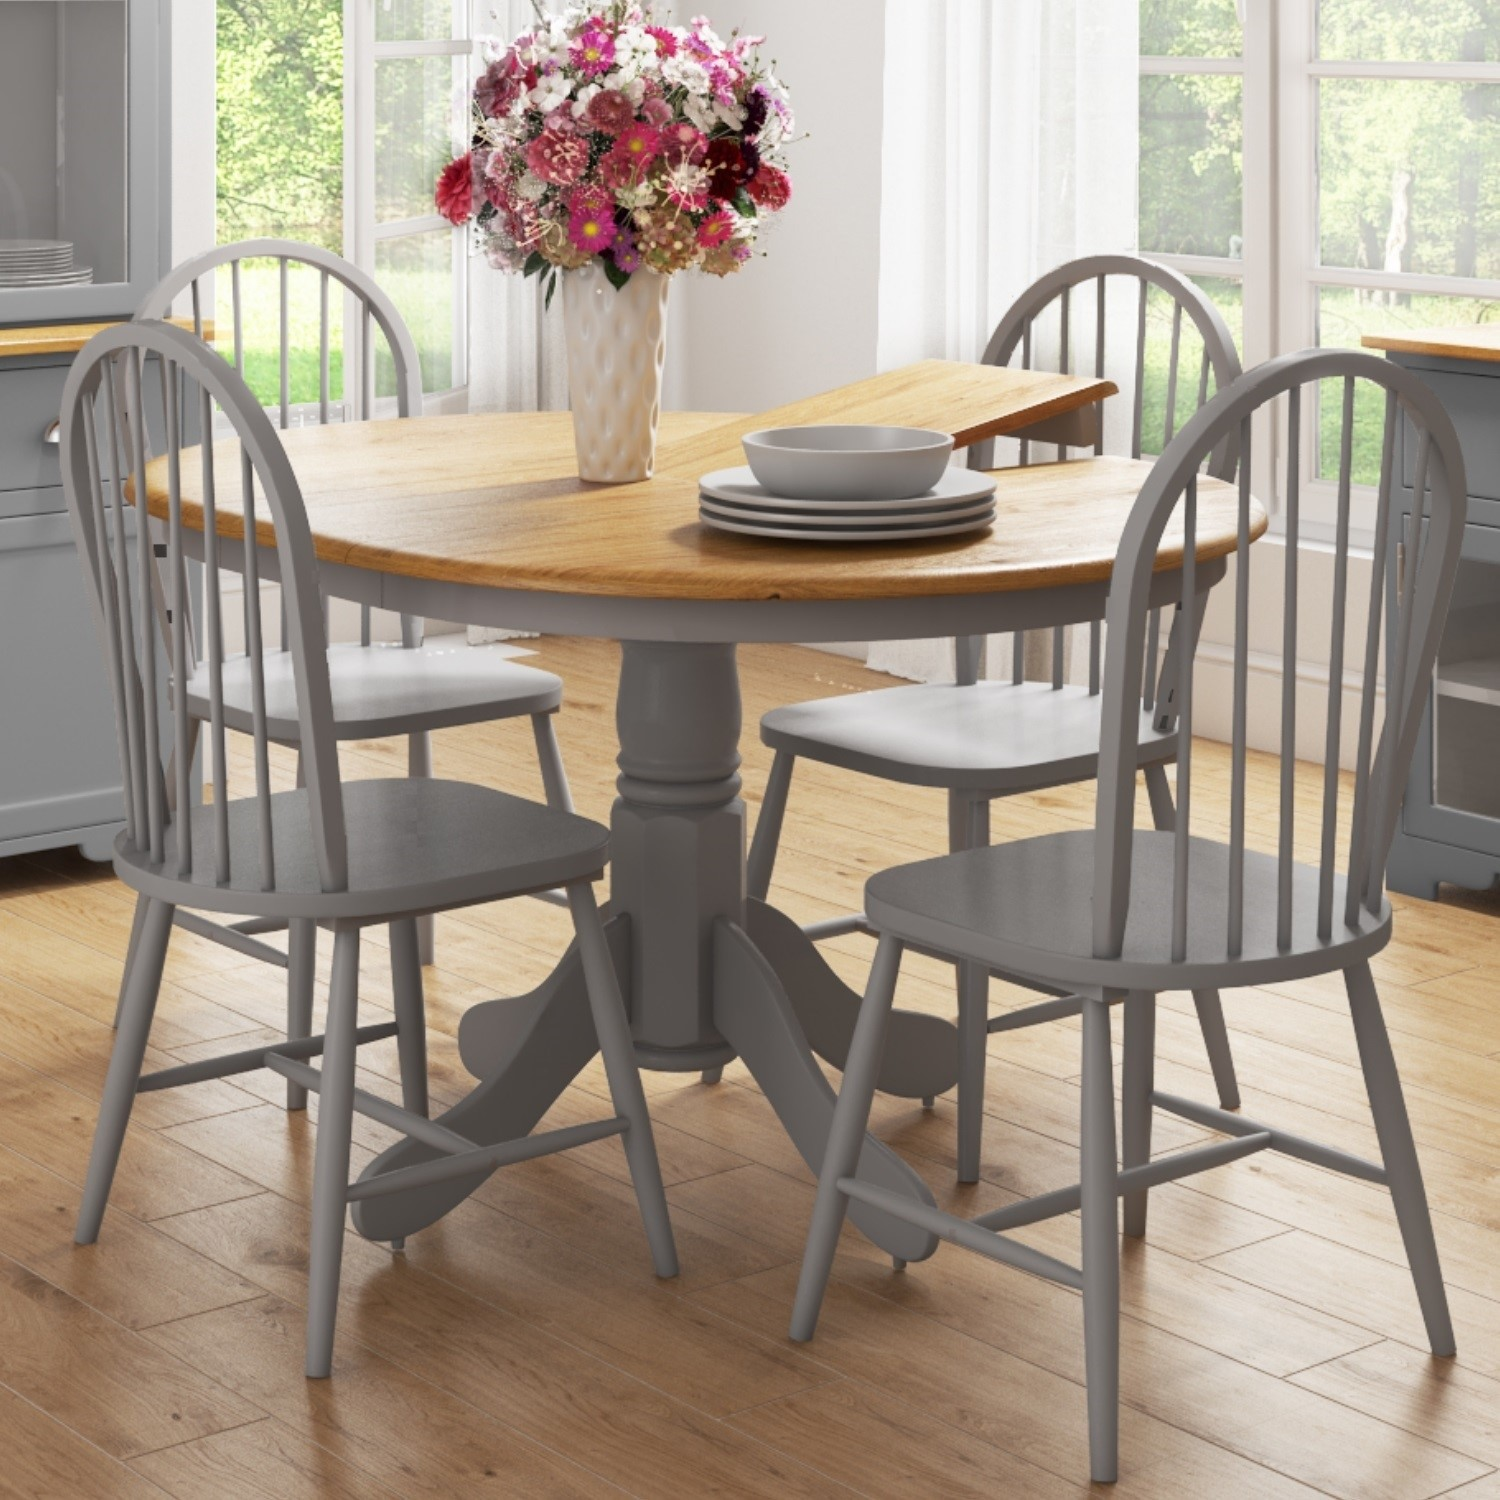 Picture of: Round Extendable Dining Table Set With 4 Grey Wooden Dining Chairs Rhode Island Furniture123